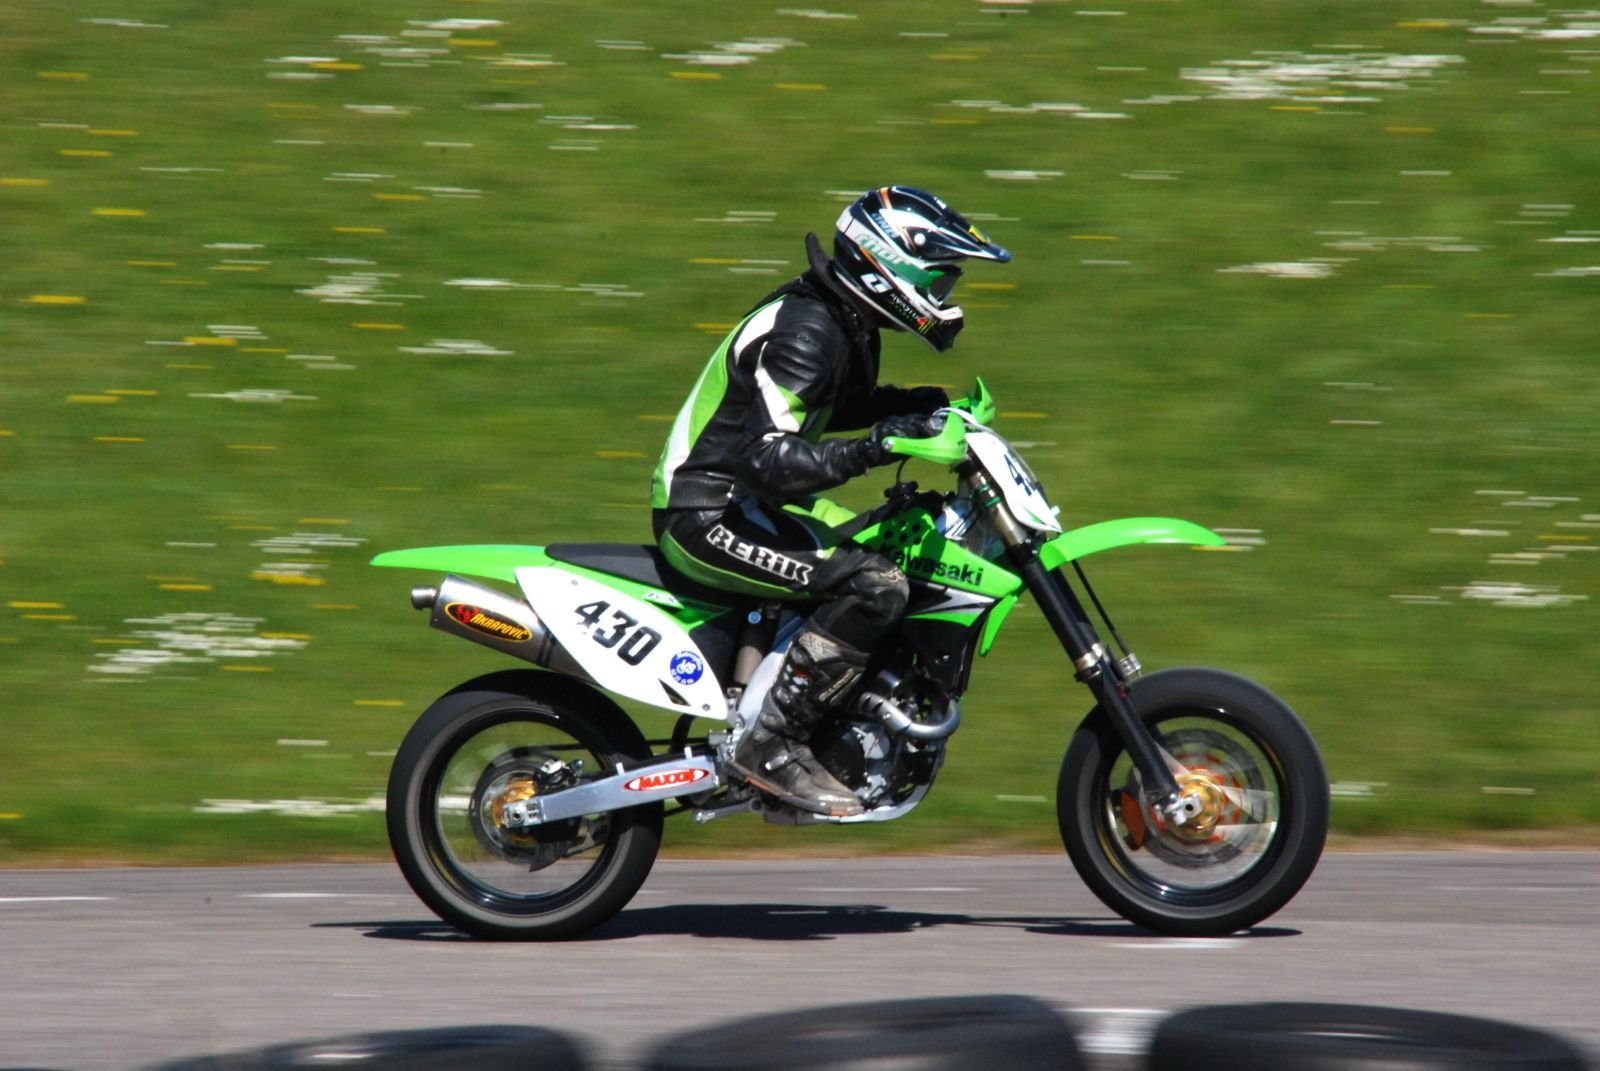 Supermotard_DM_ALS_2009 (4)